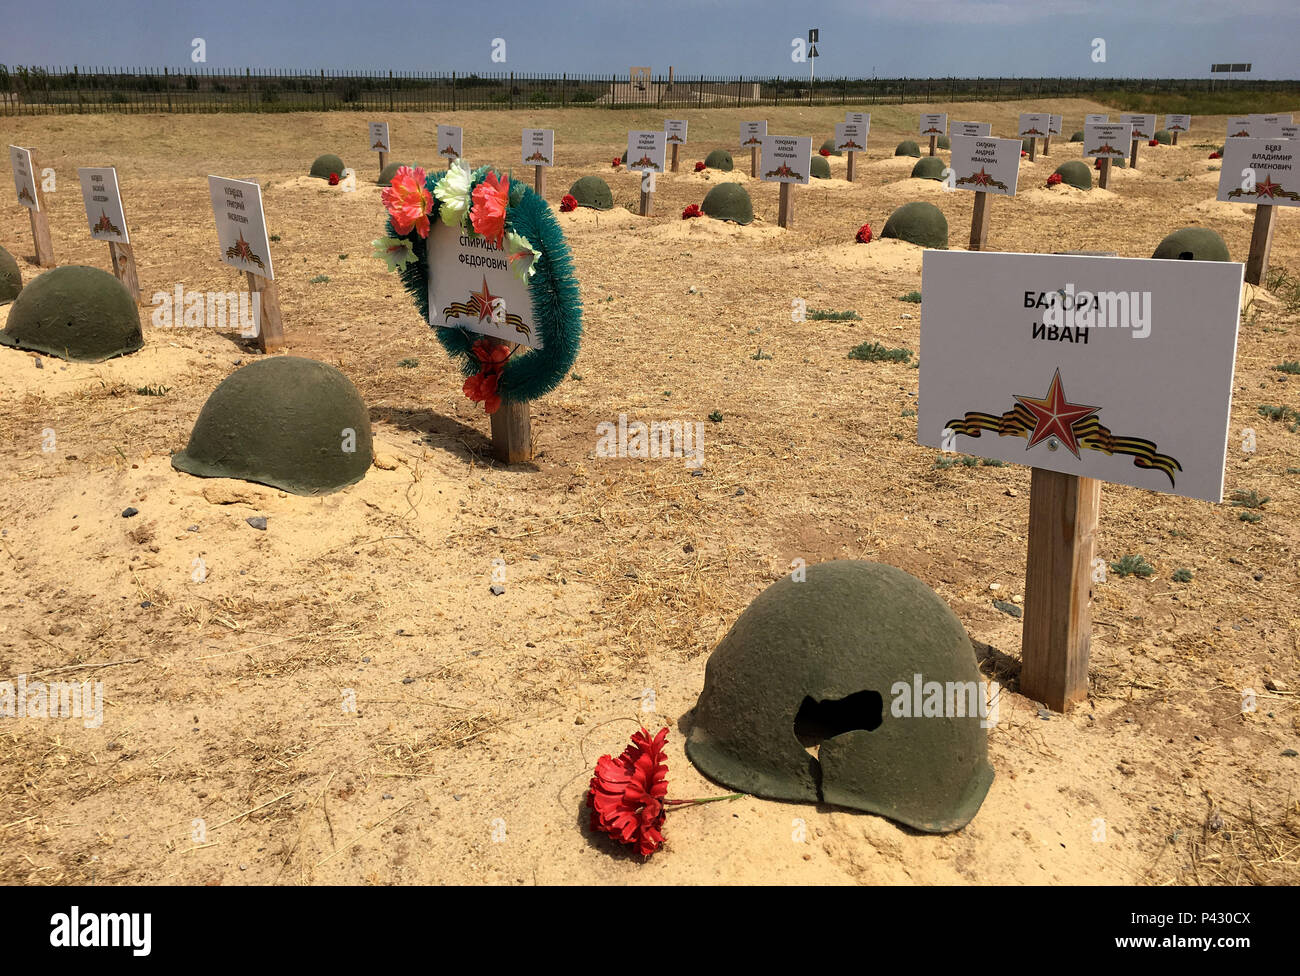 Rossoschka, Russia. 16th June, 2018. Steel helmets and nameplates attached to wooden posts stand at the graves of fallen Red Army soldiers at the «Rossoschka Military Cemetery». Here not only soldiers of the German Wehrmacht are buried, but also members of the Red Army. Only a narrow street separates today's opponents. The remote memorial commemorates one of the worst chapters in World War II: the Battle of Stalingrad. Credit: Martin Moravec/dpa/Alamy Live News - Stock Image